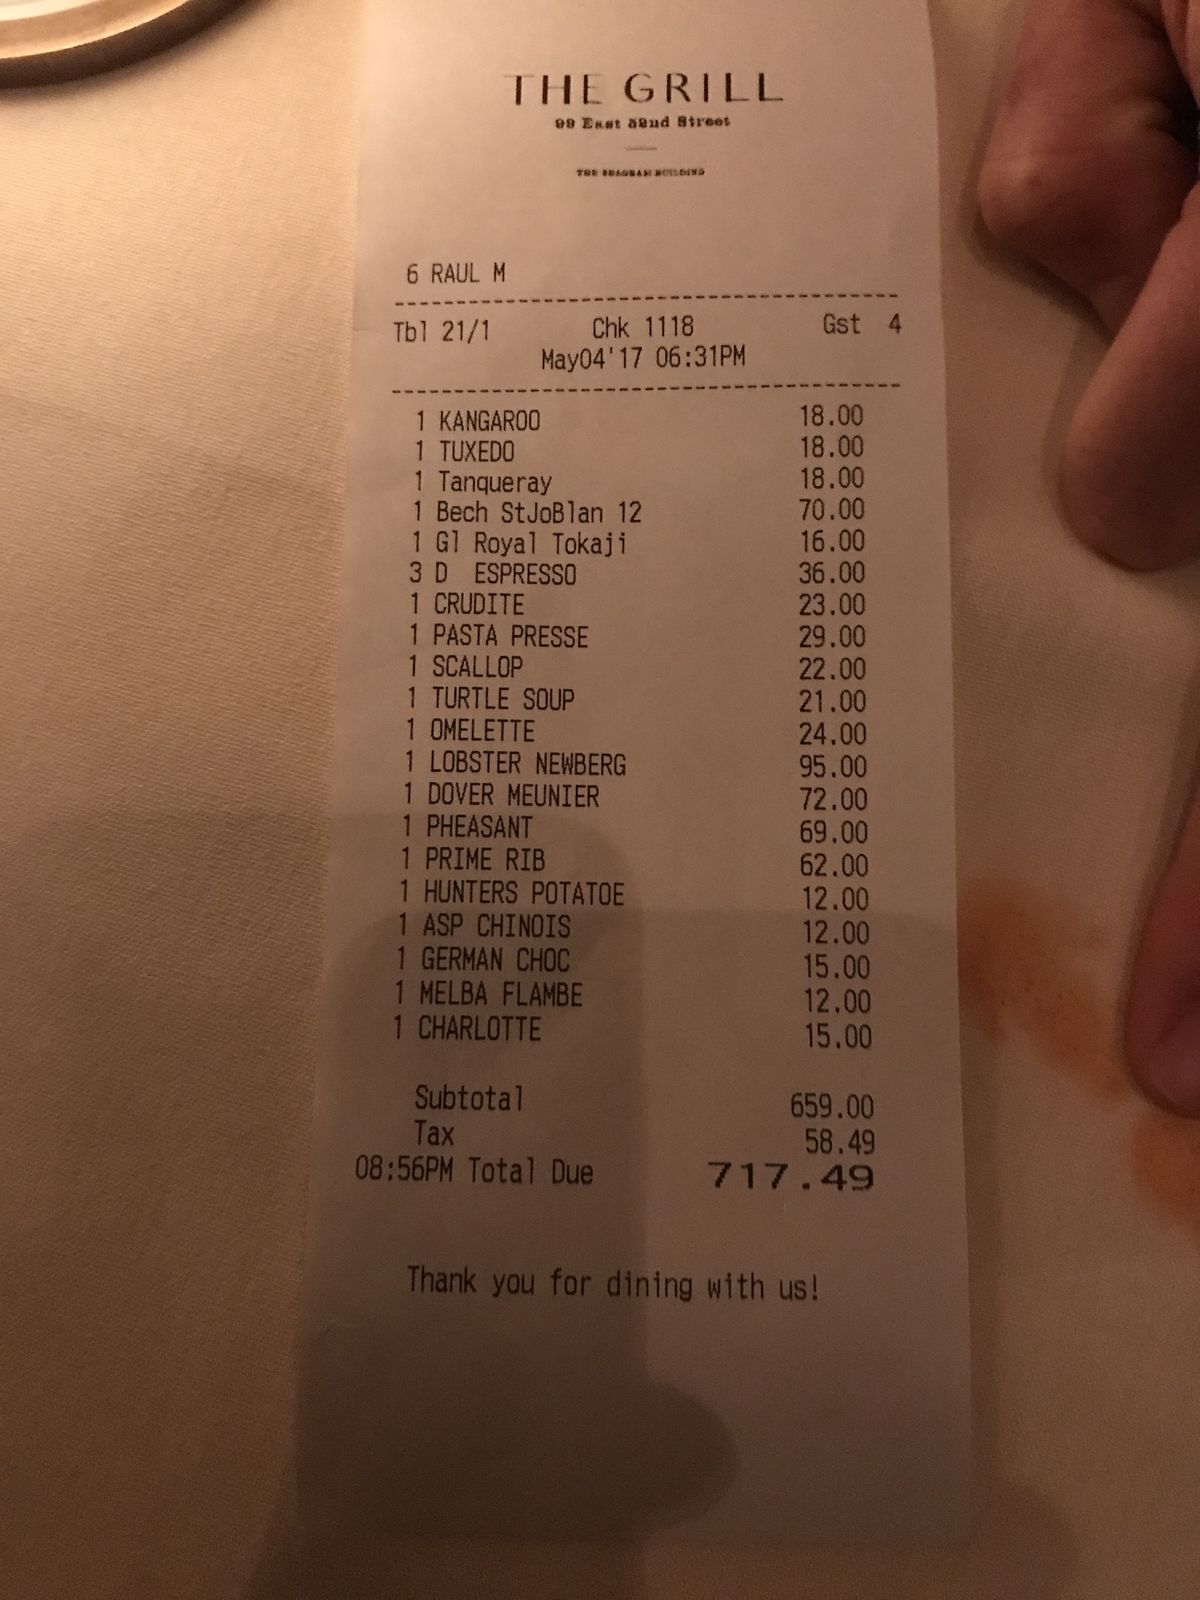 The Grill receipt